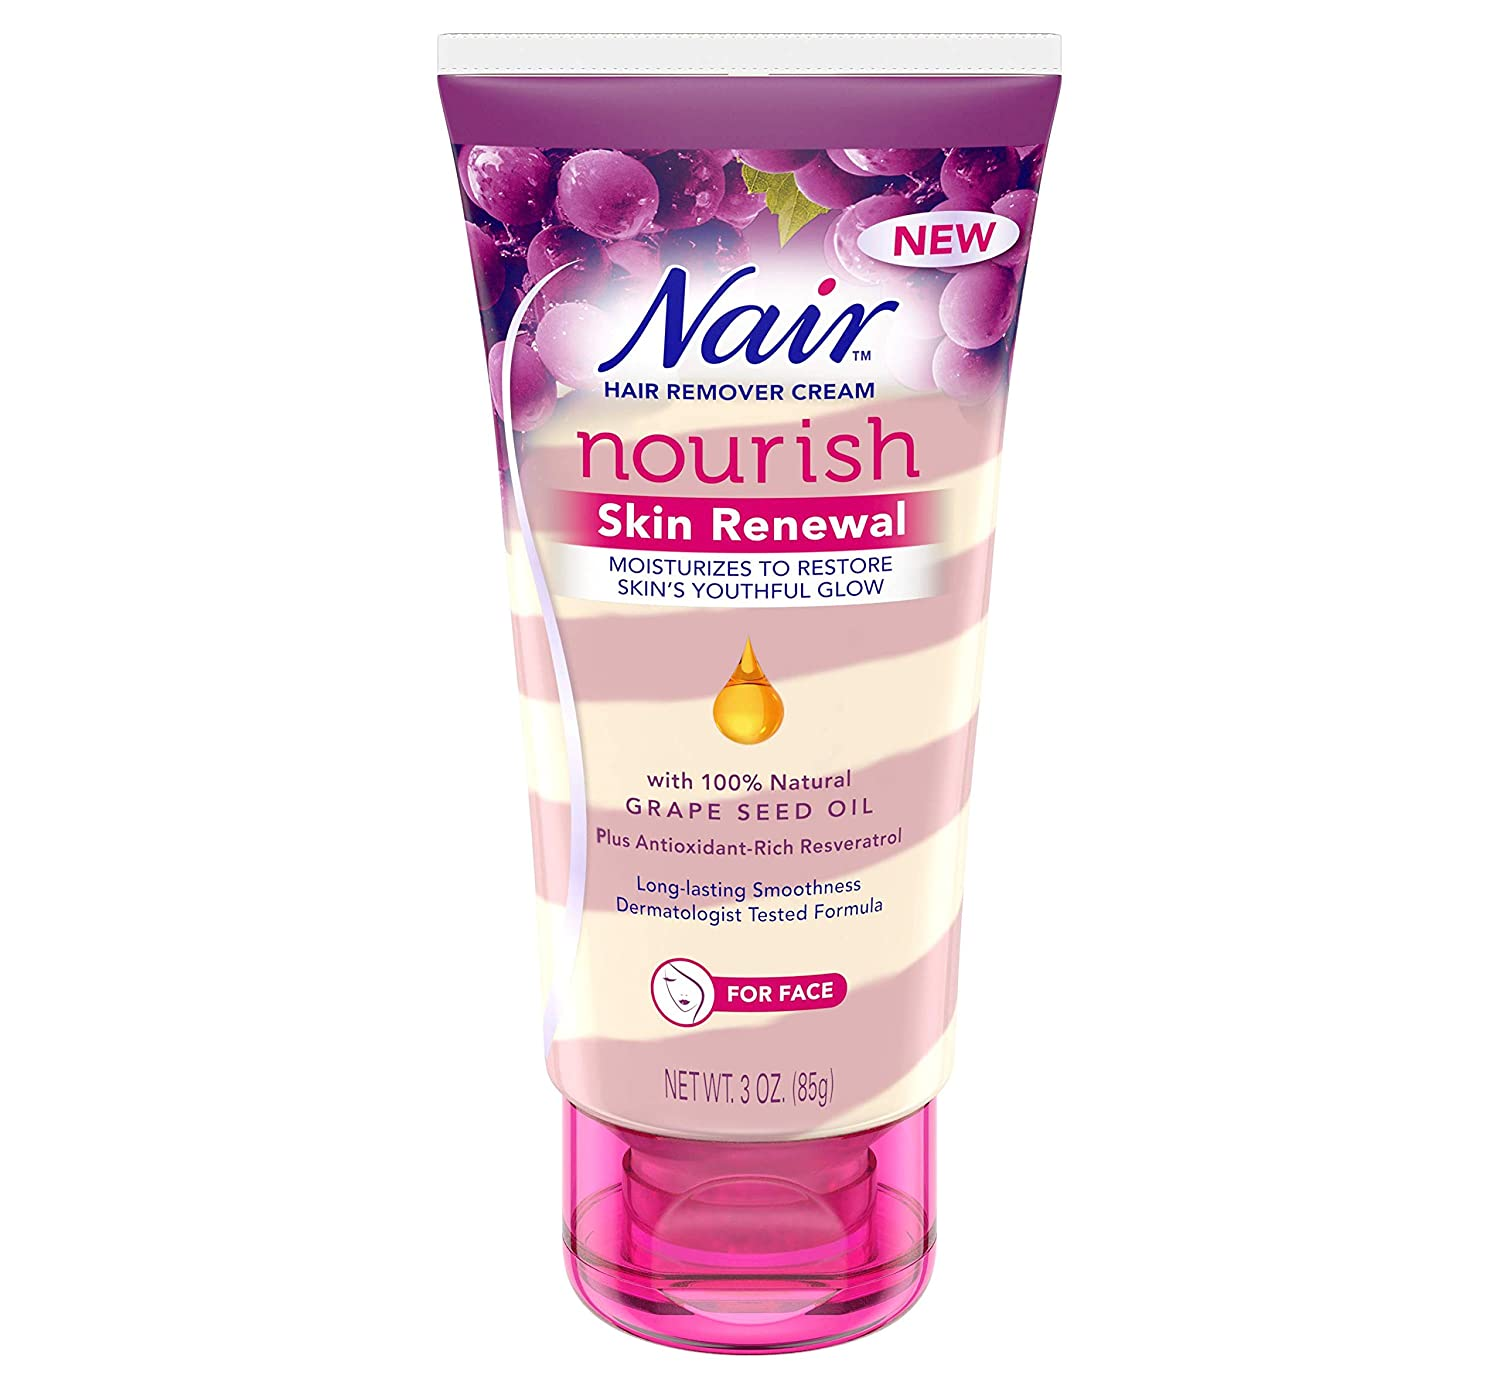 Nair Hair Remover Nourish Skin Renewal Face 3 Ounce (88ml) (2 Pack)